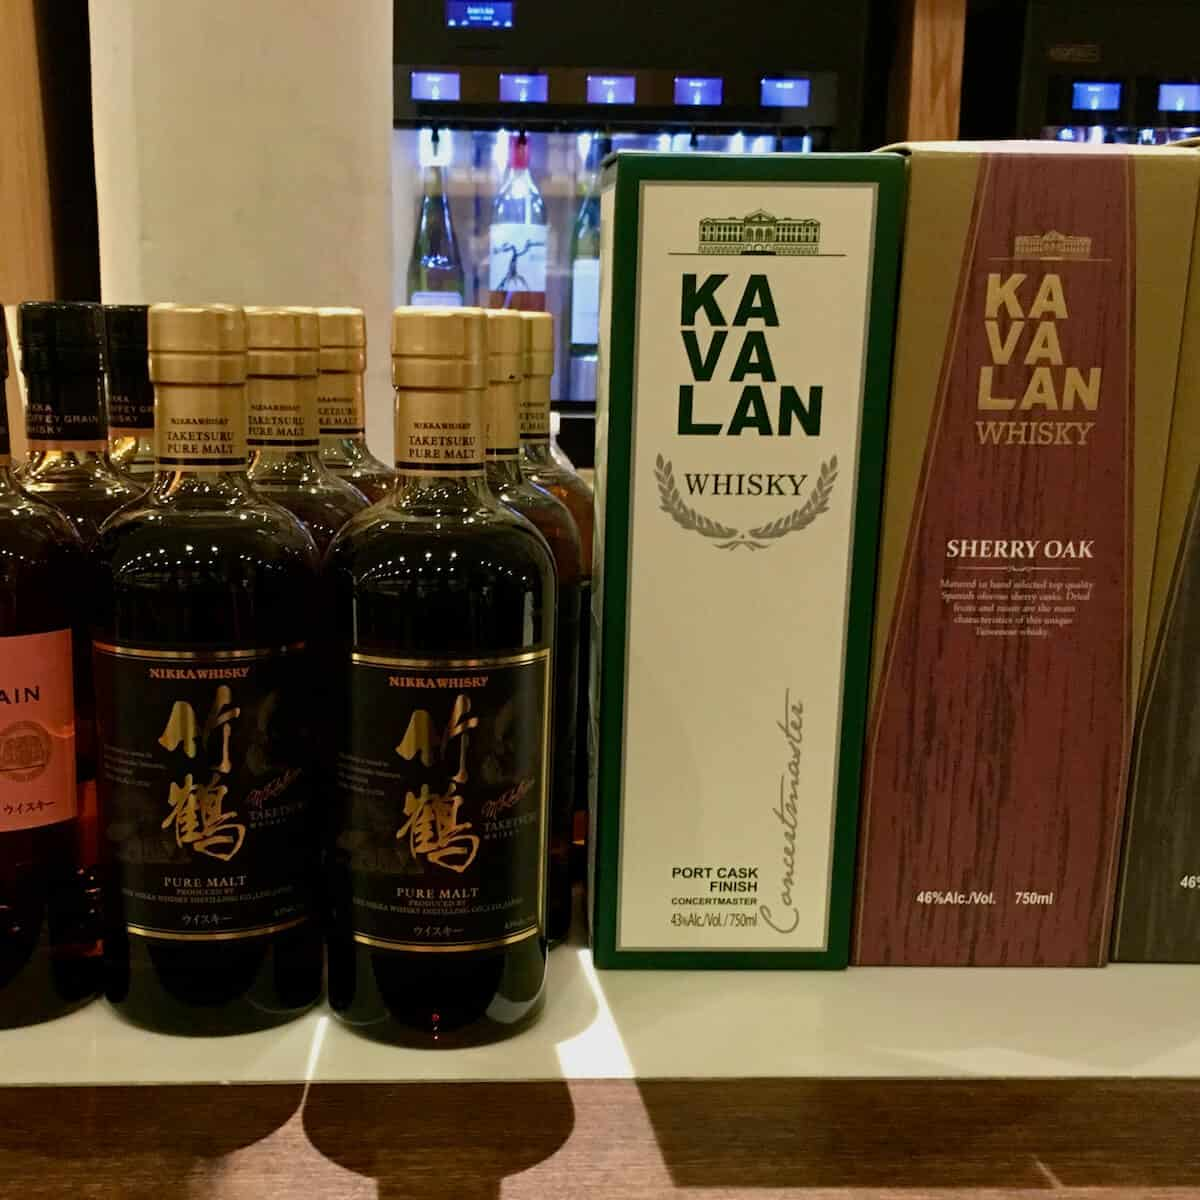 Kavalan & Nikka whisky tasting lineup in boxes & bottles on a counter.